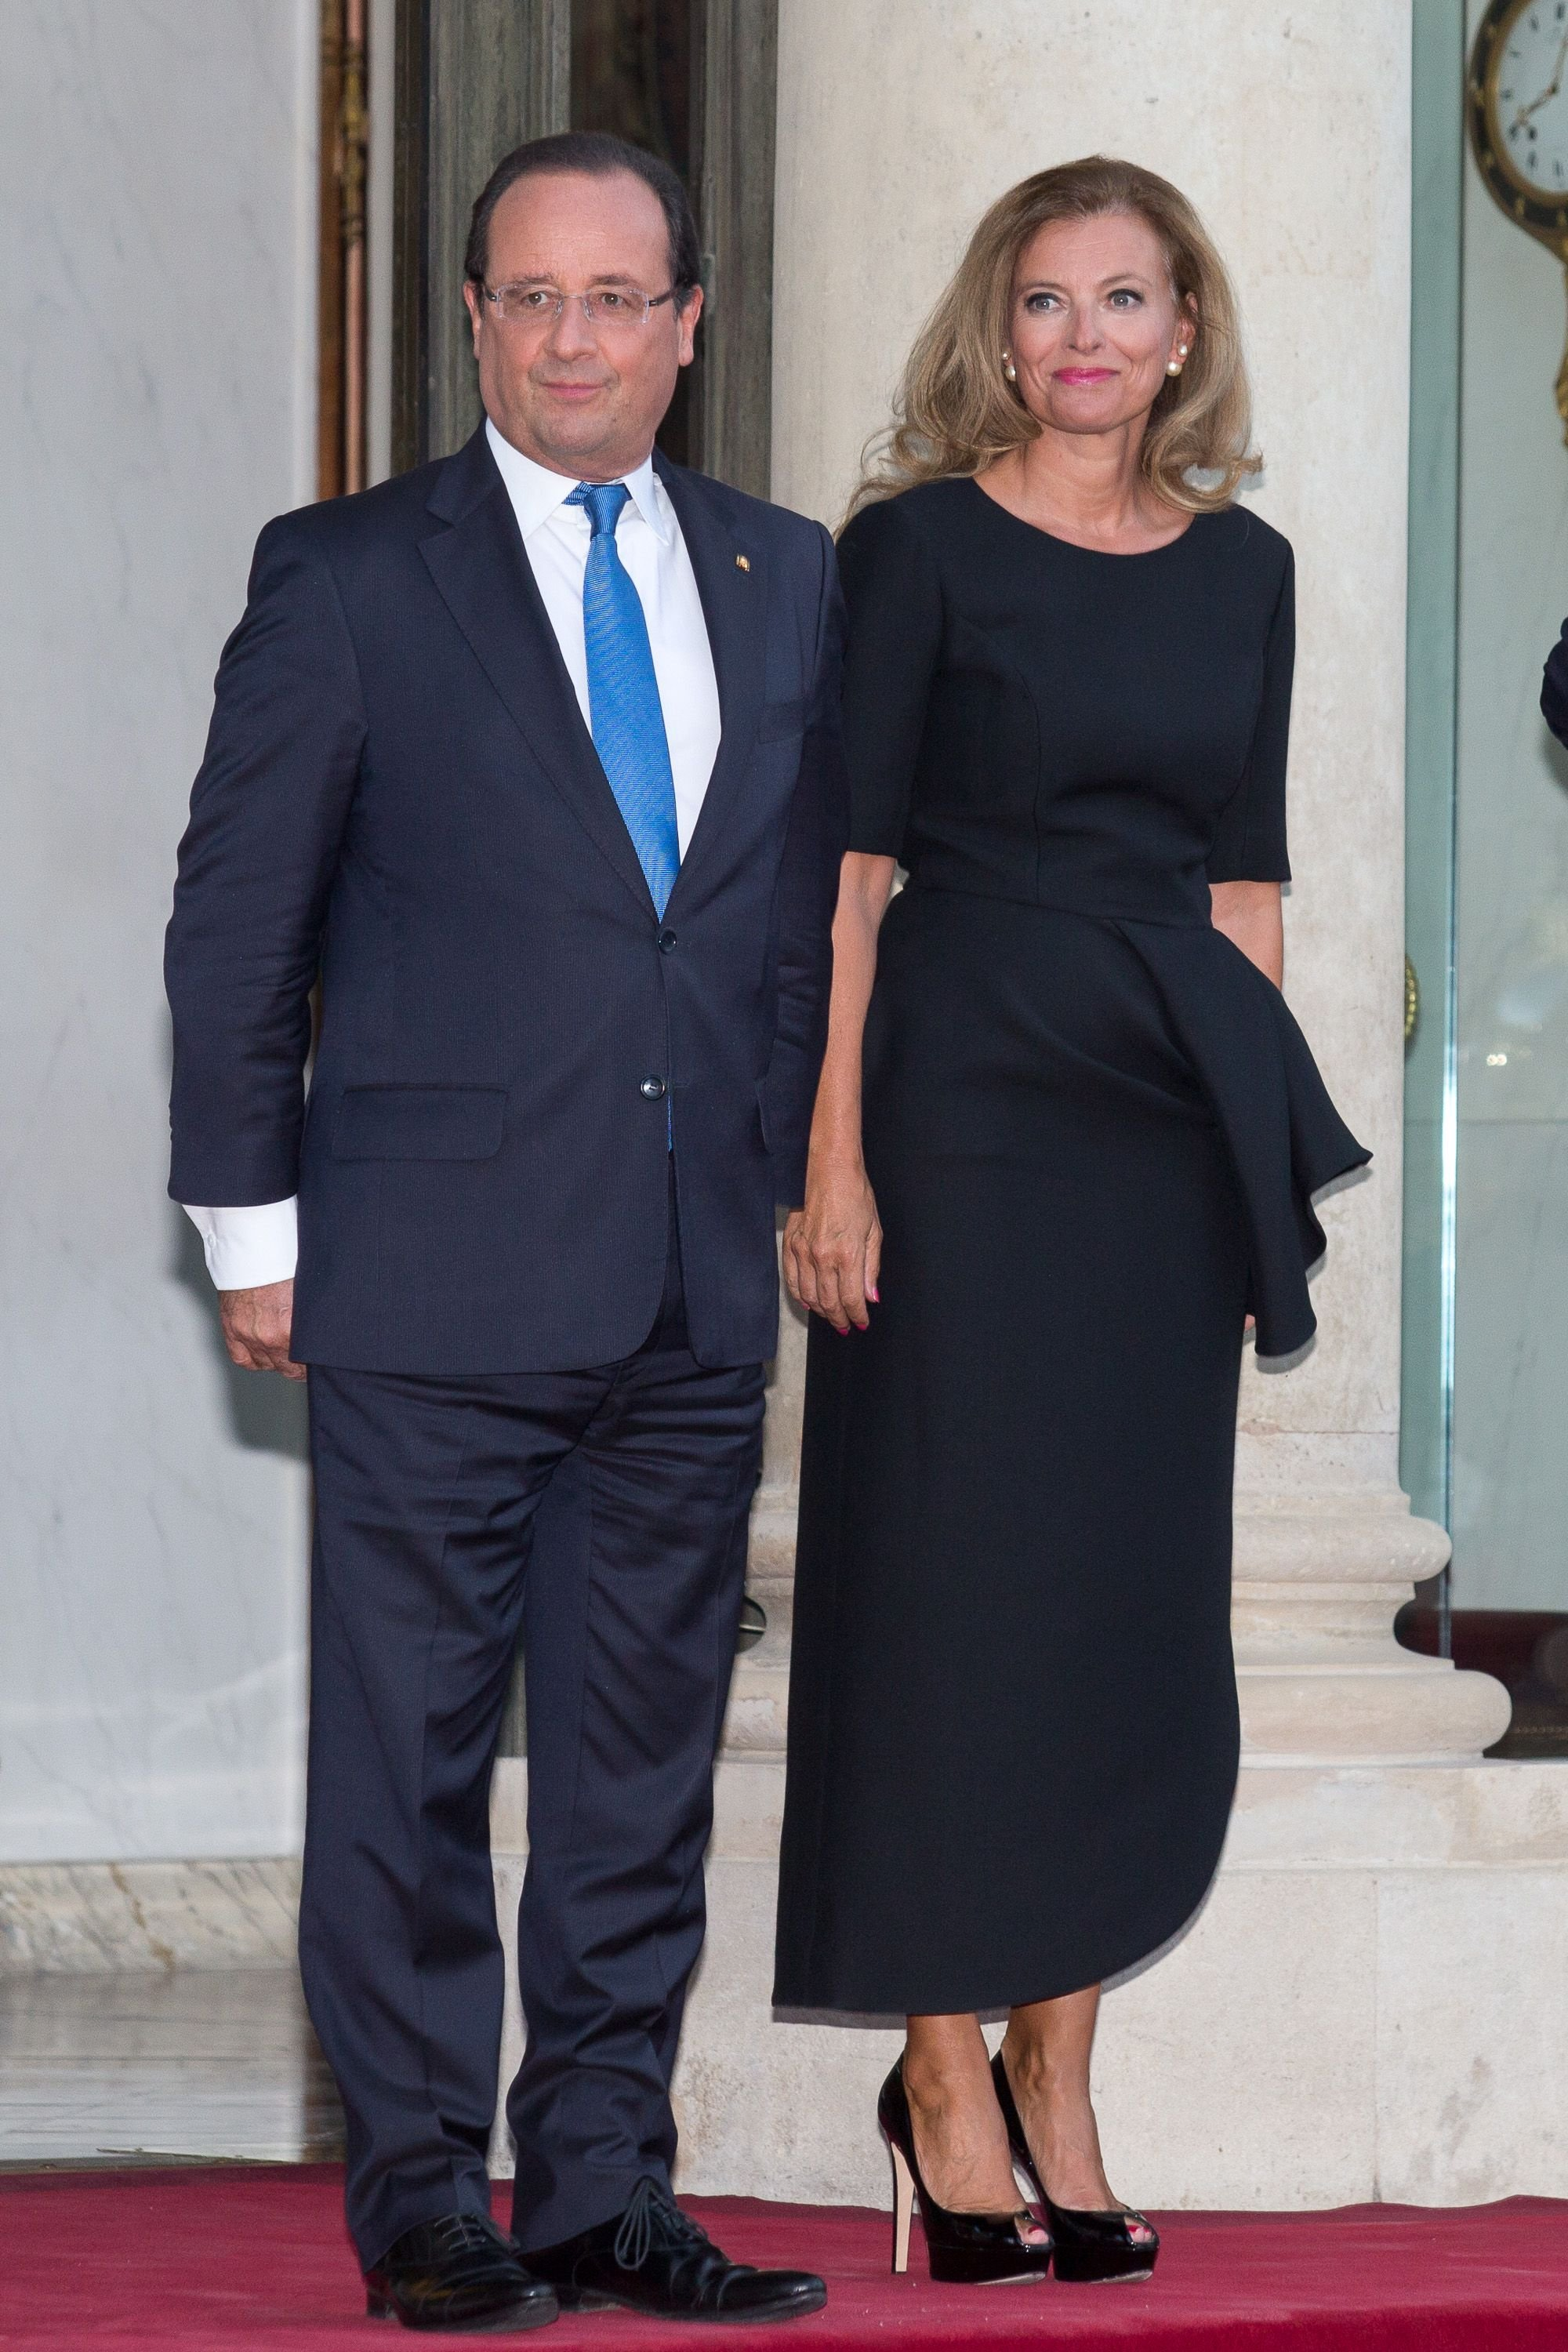 François Hollande et sa compagne Valérie Trierweiler à l'Elysée le 3 septembre 2013 à Paris, France. | Photo : Getty Images